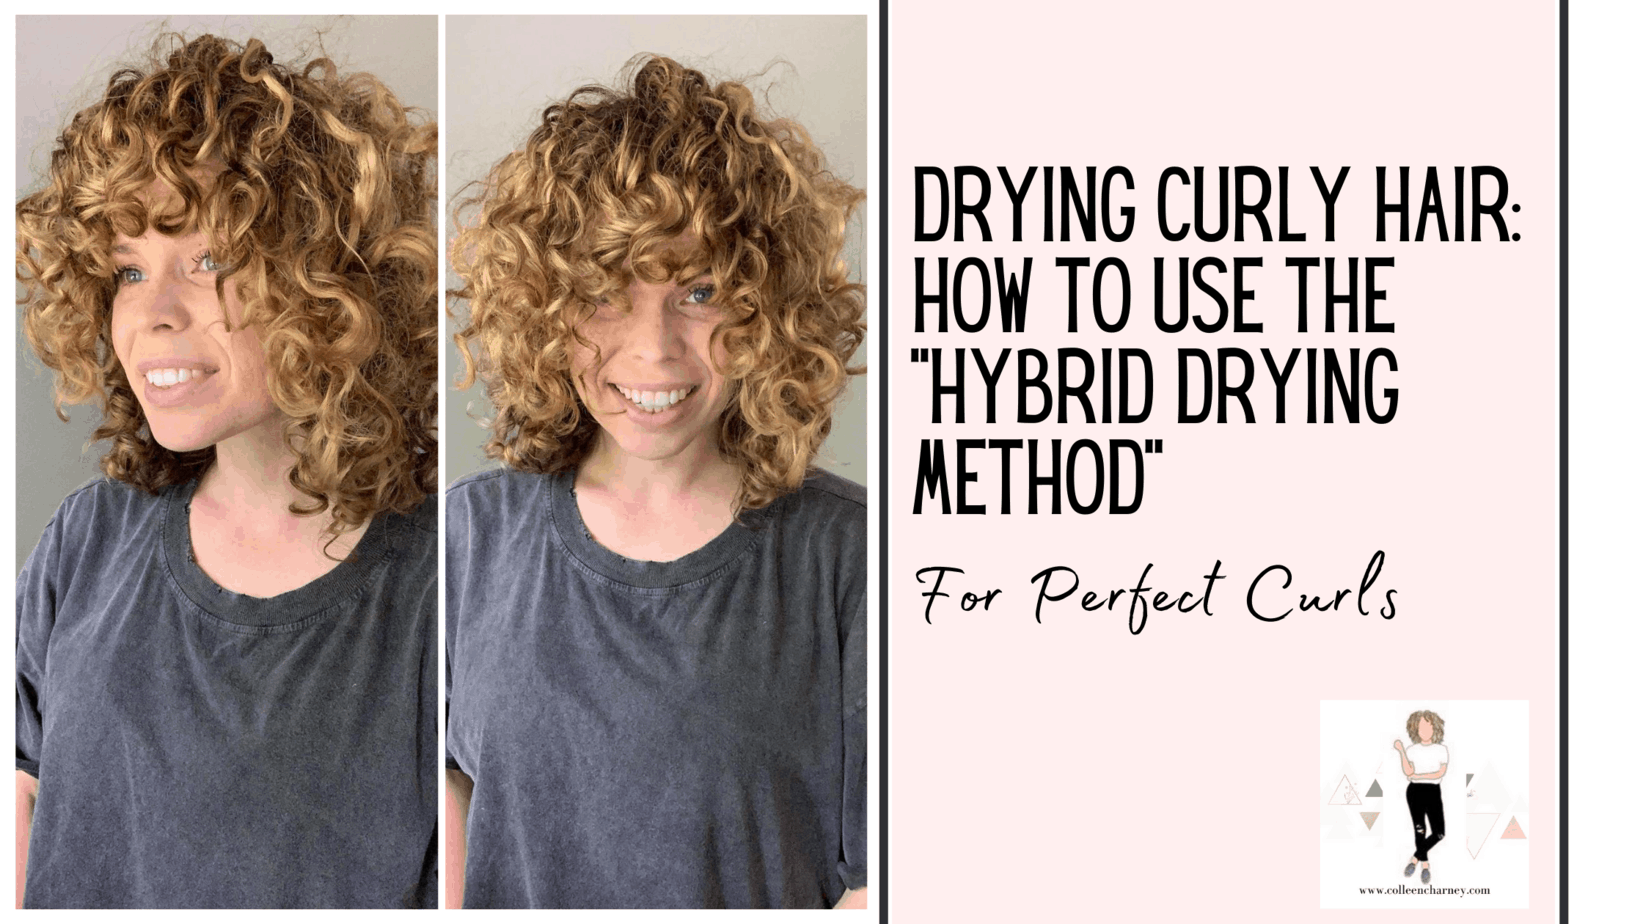 Drying Curly Hair